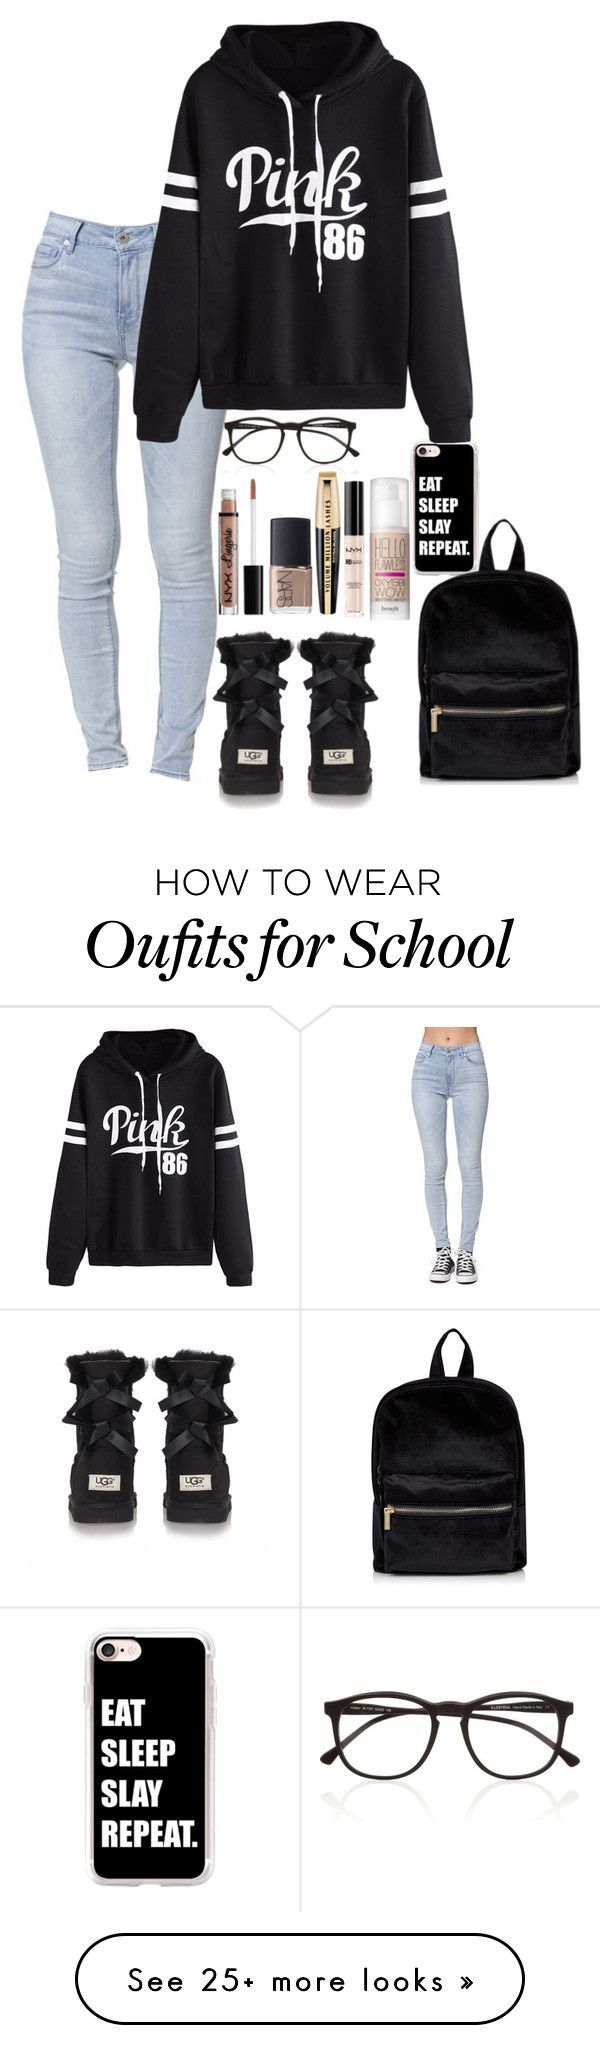 """Snow Day at School 12/7/16"" by violeta27 on Polyvore featuring Casetify, Bullhead Denim Co., UGG Australia, WithChic, NYX, Illesteva, NARS Cosmetics, L'Oréal Paris and Benefit"